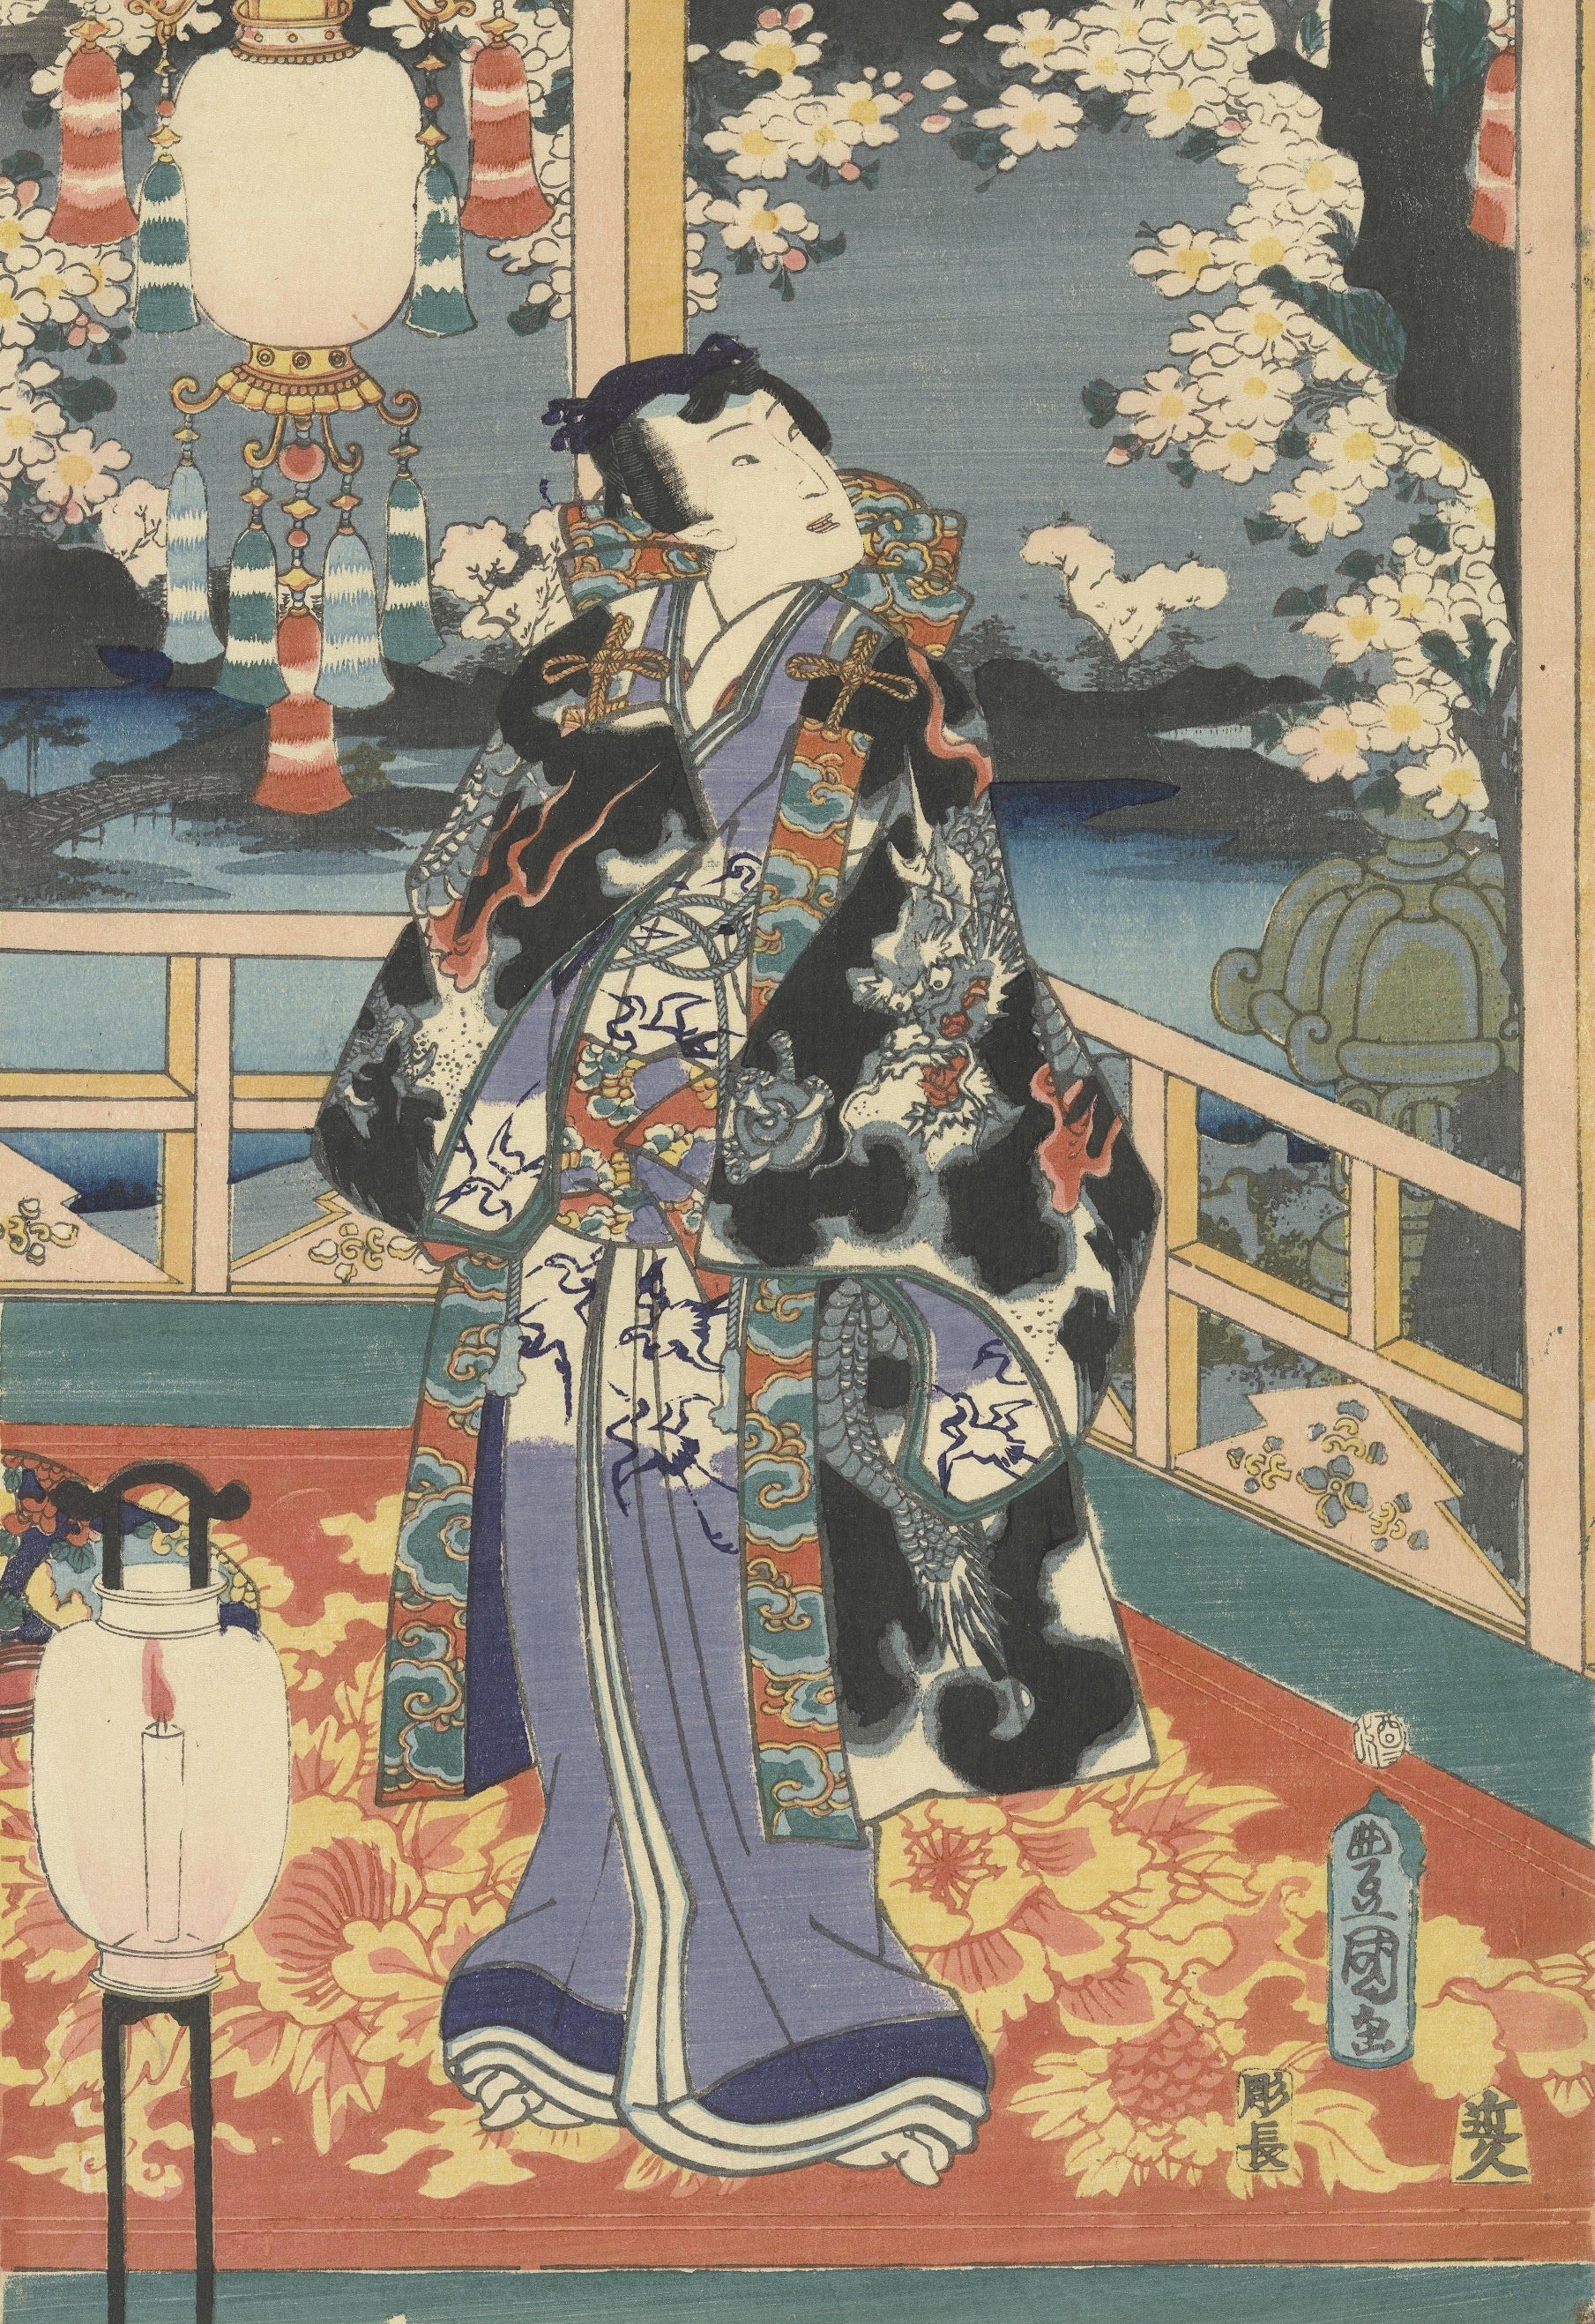 Genji Reflecting on the Flowers at Night, central sheet of a triptych Edo, first month 1861 Utagawa Kunisada (1786 - 1865)